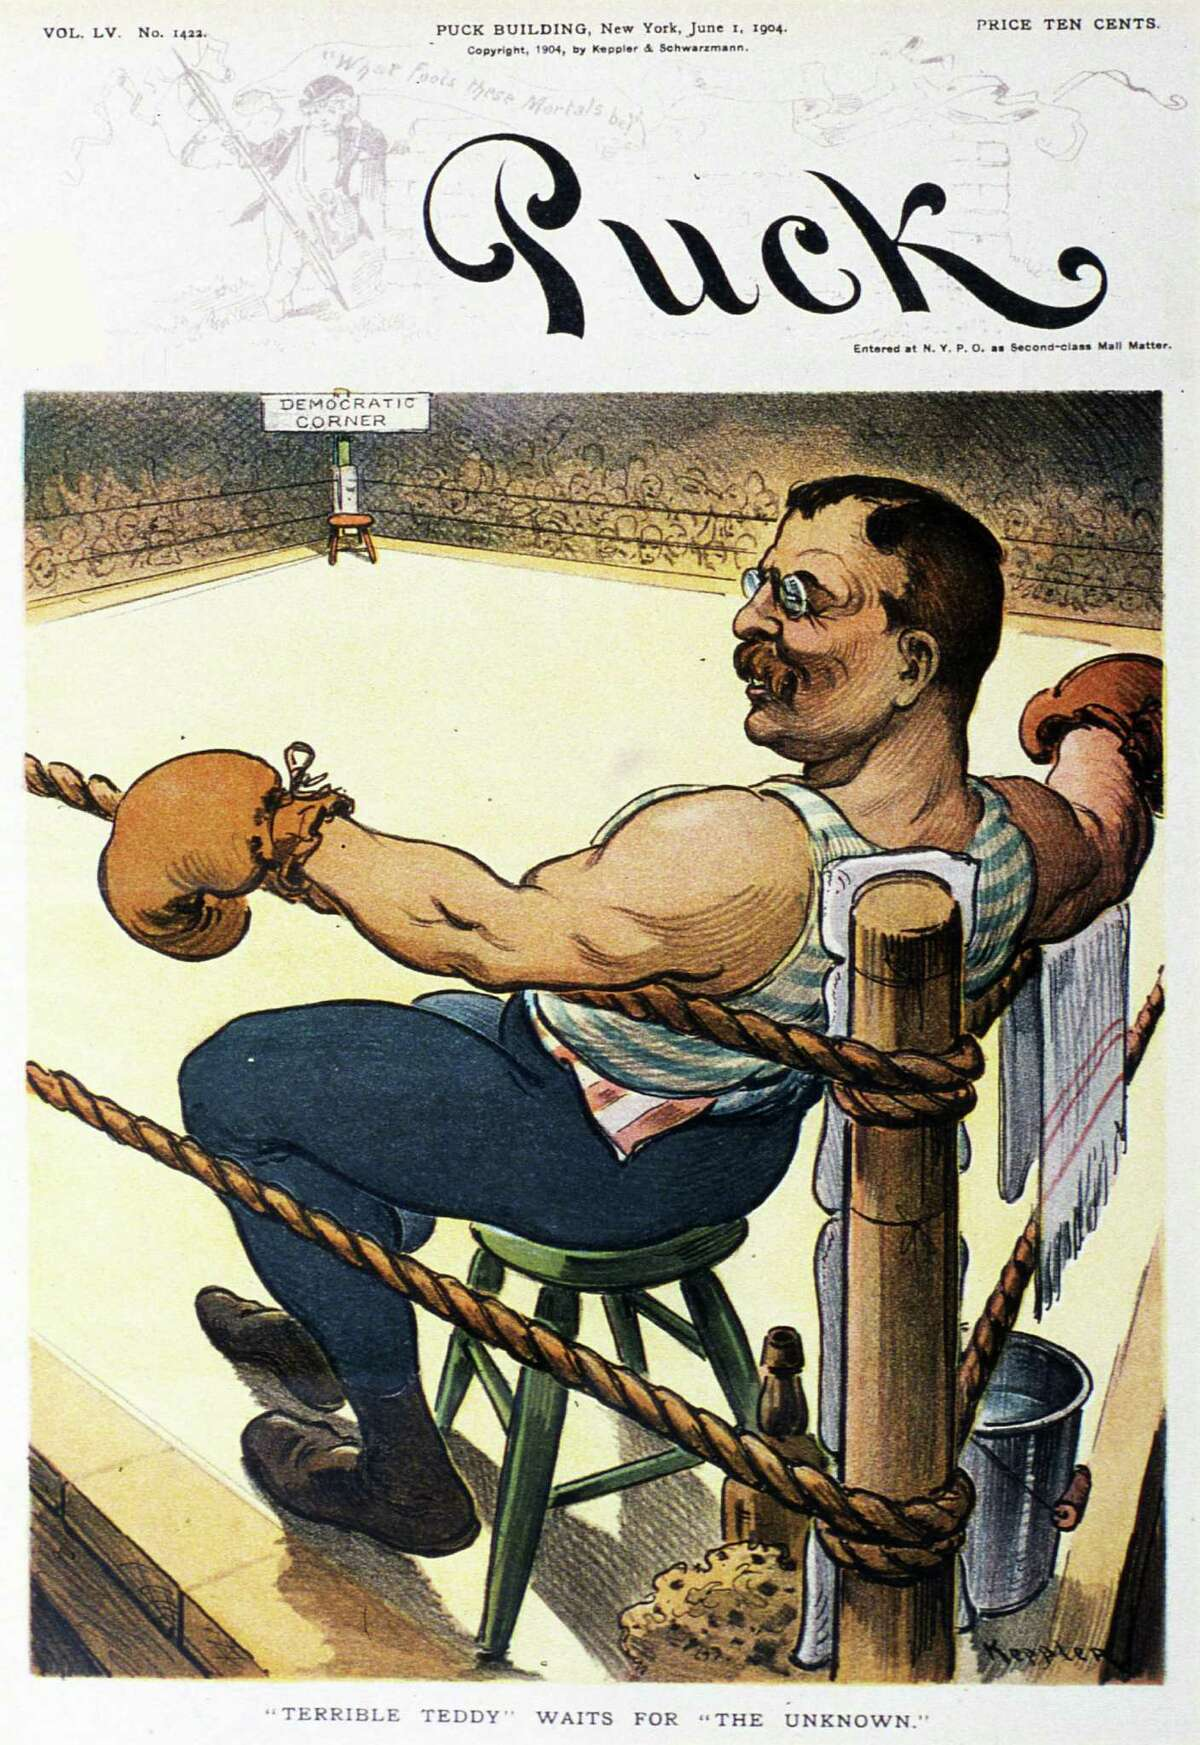 THEODORE ROOSEVELT, 1901-09 Roosevelt, a noted pugilist as evidenced with this magazine cover, was second in Harvard's lightweight boxing championship in 1879.